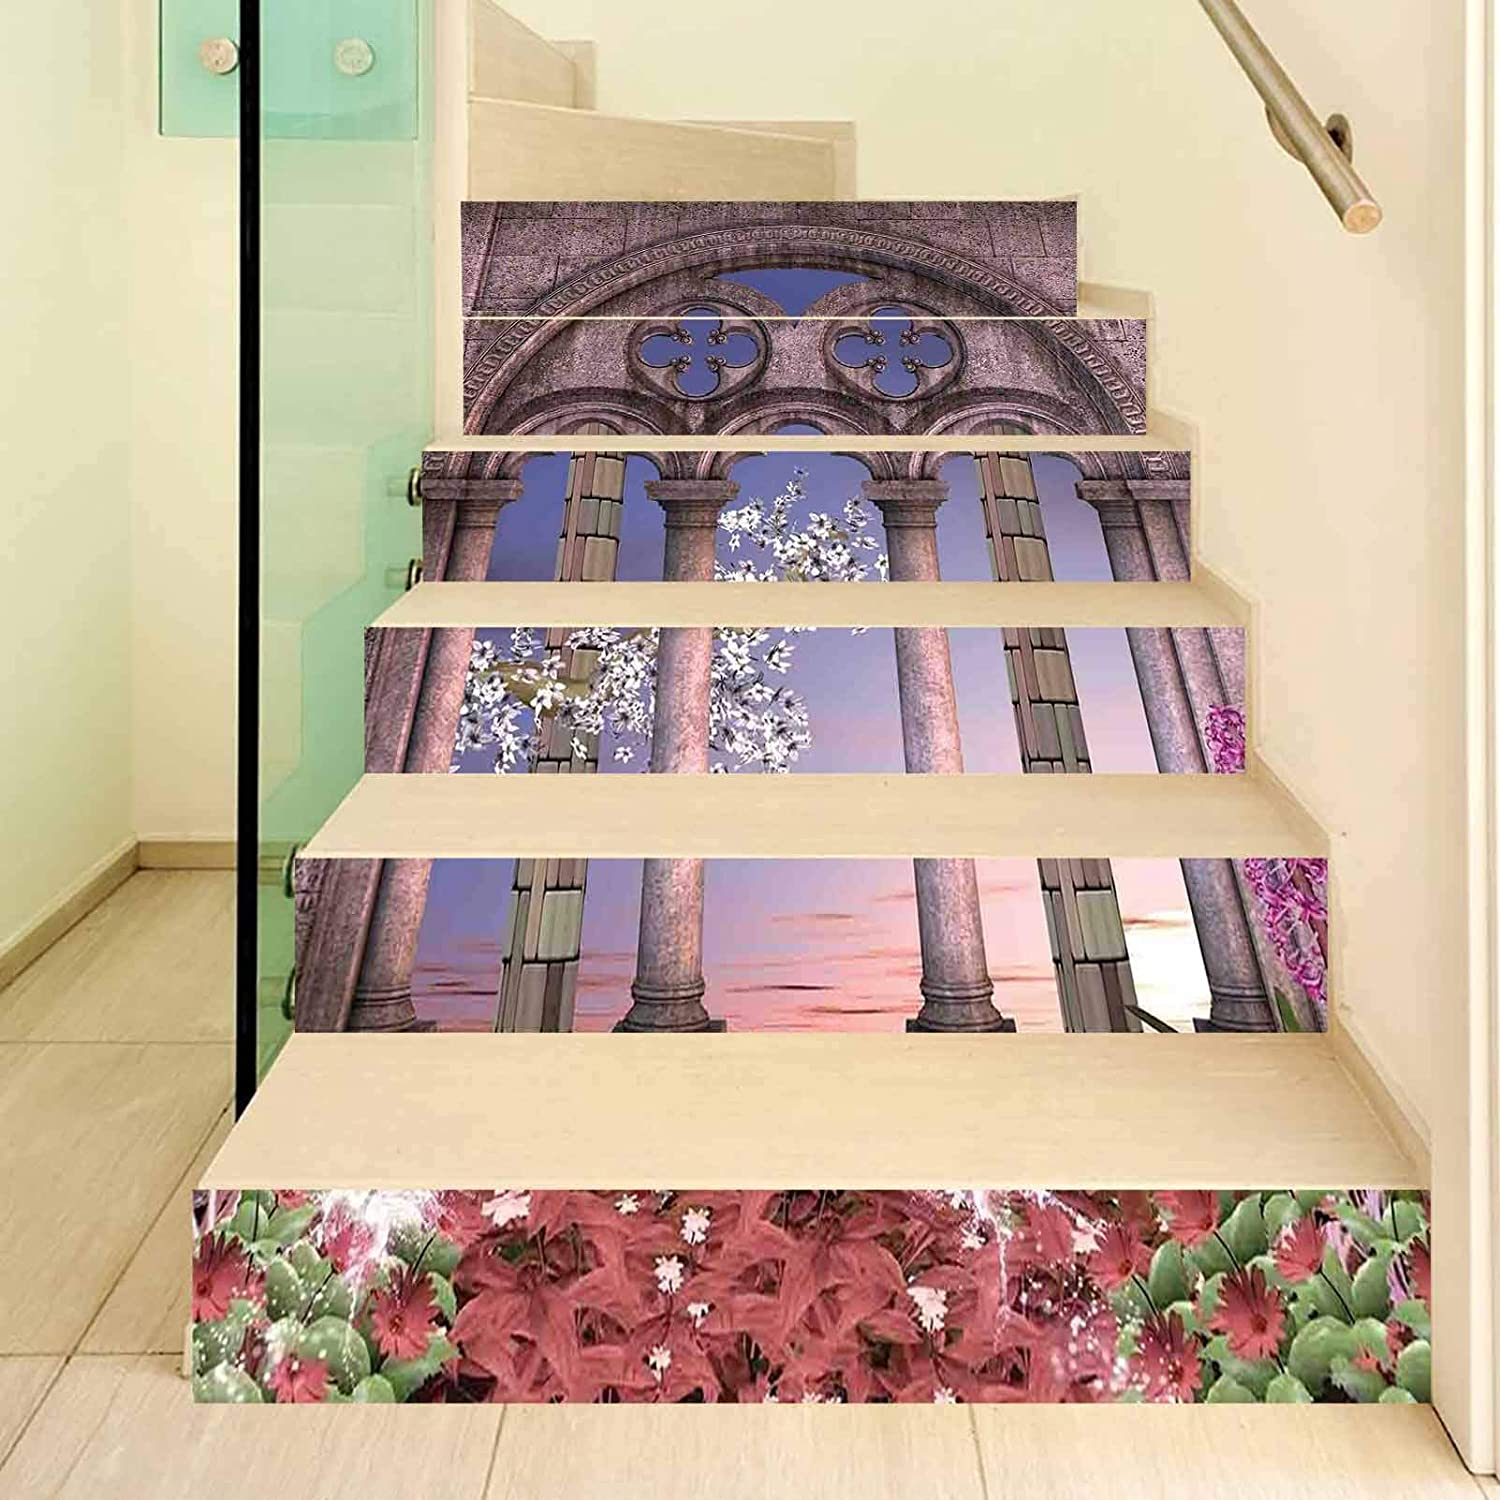 Gothic 3D Stair Stickers Decals-6Pcs/Set,Ancient Colonnade in Secret Garden with Flowers at Sunset Enchanted Forest Stair Risers Stickers Removable Staircase Decals Mural Wallpaper for Home Decor